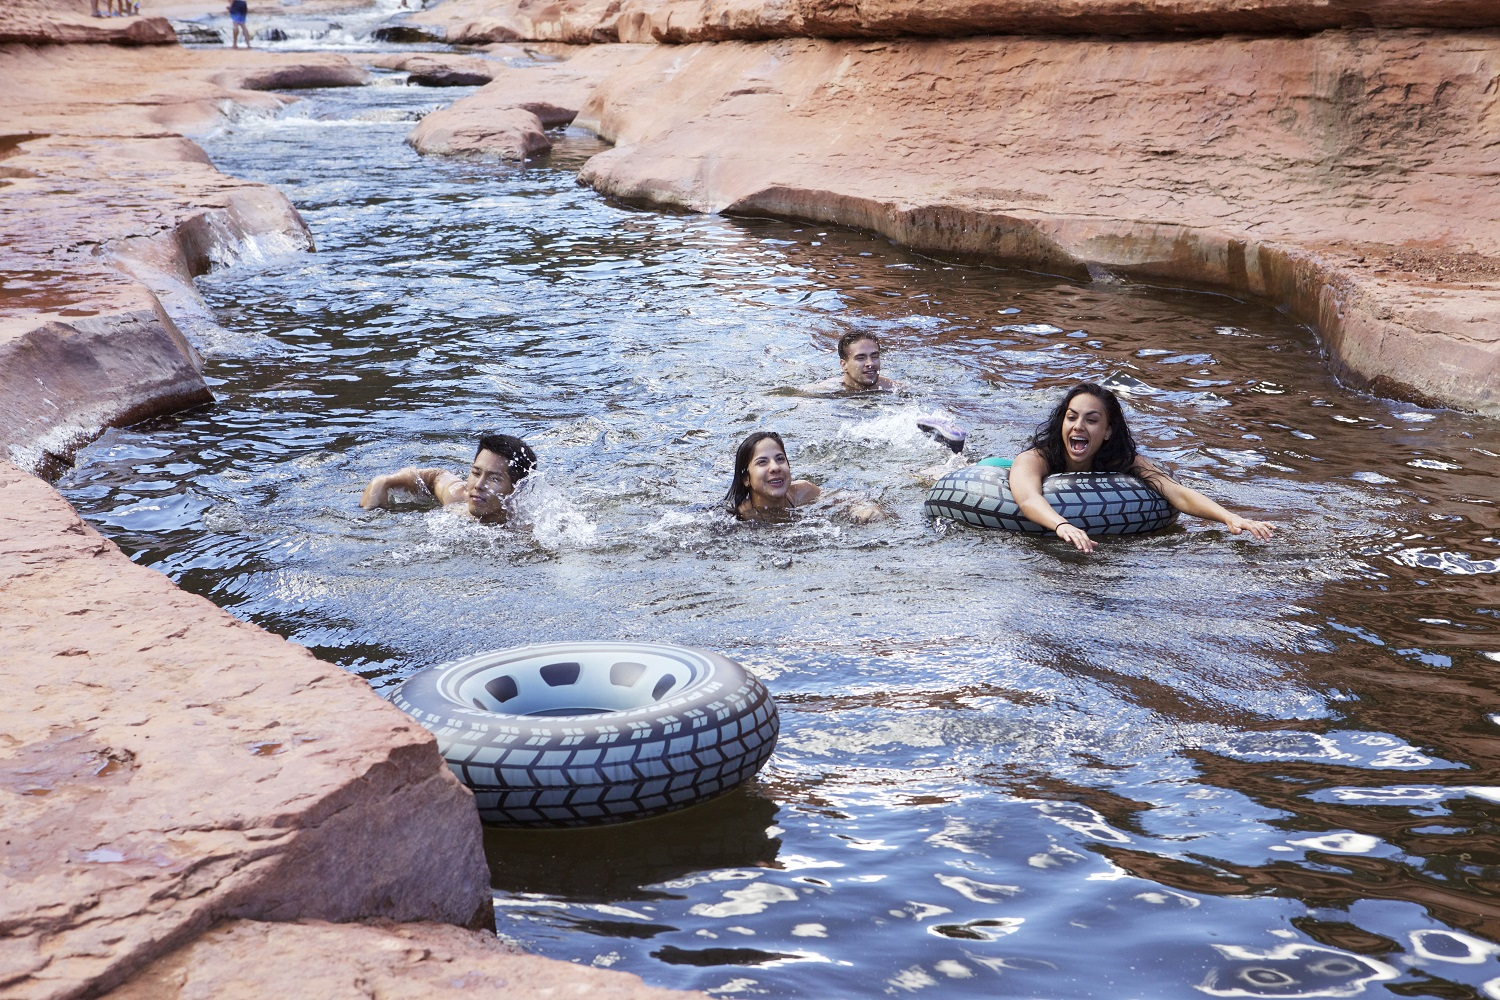 Travel Channel swimming holes